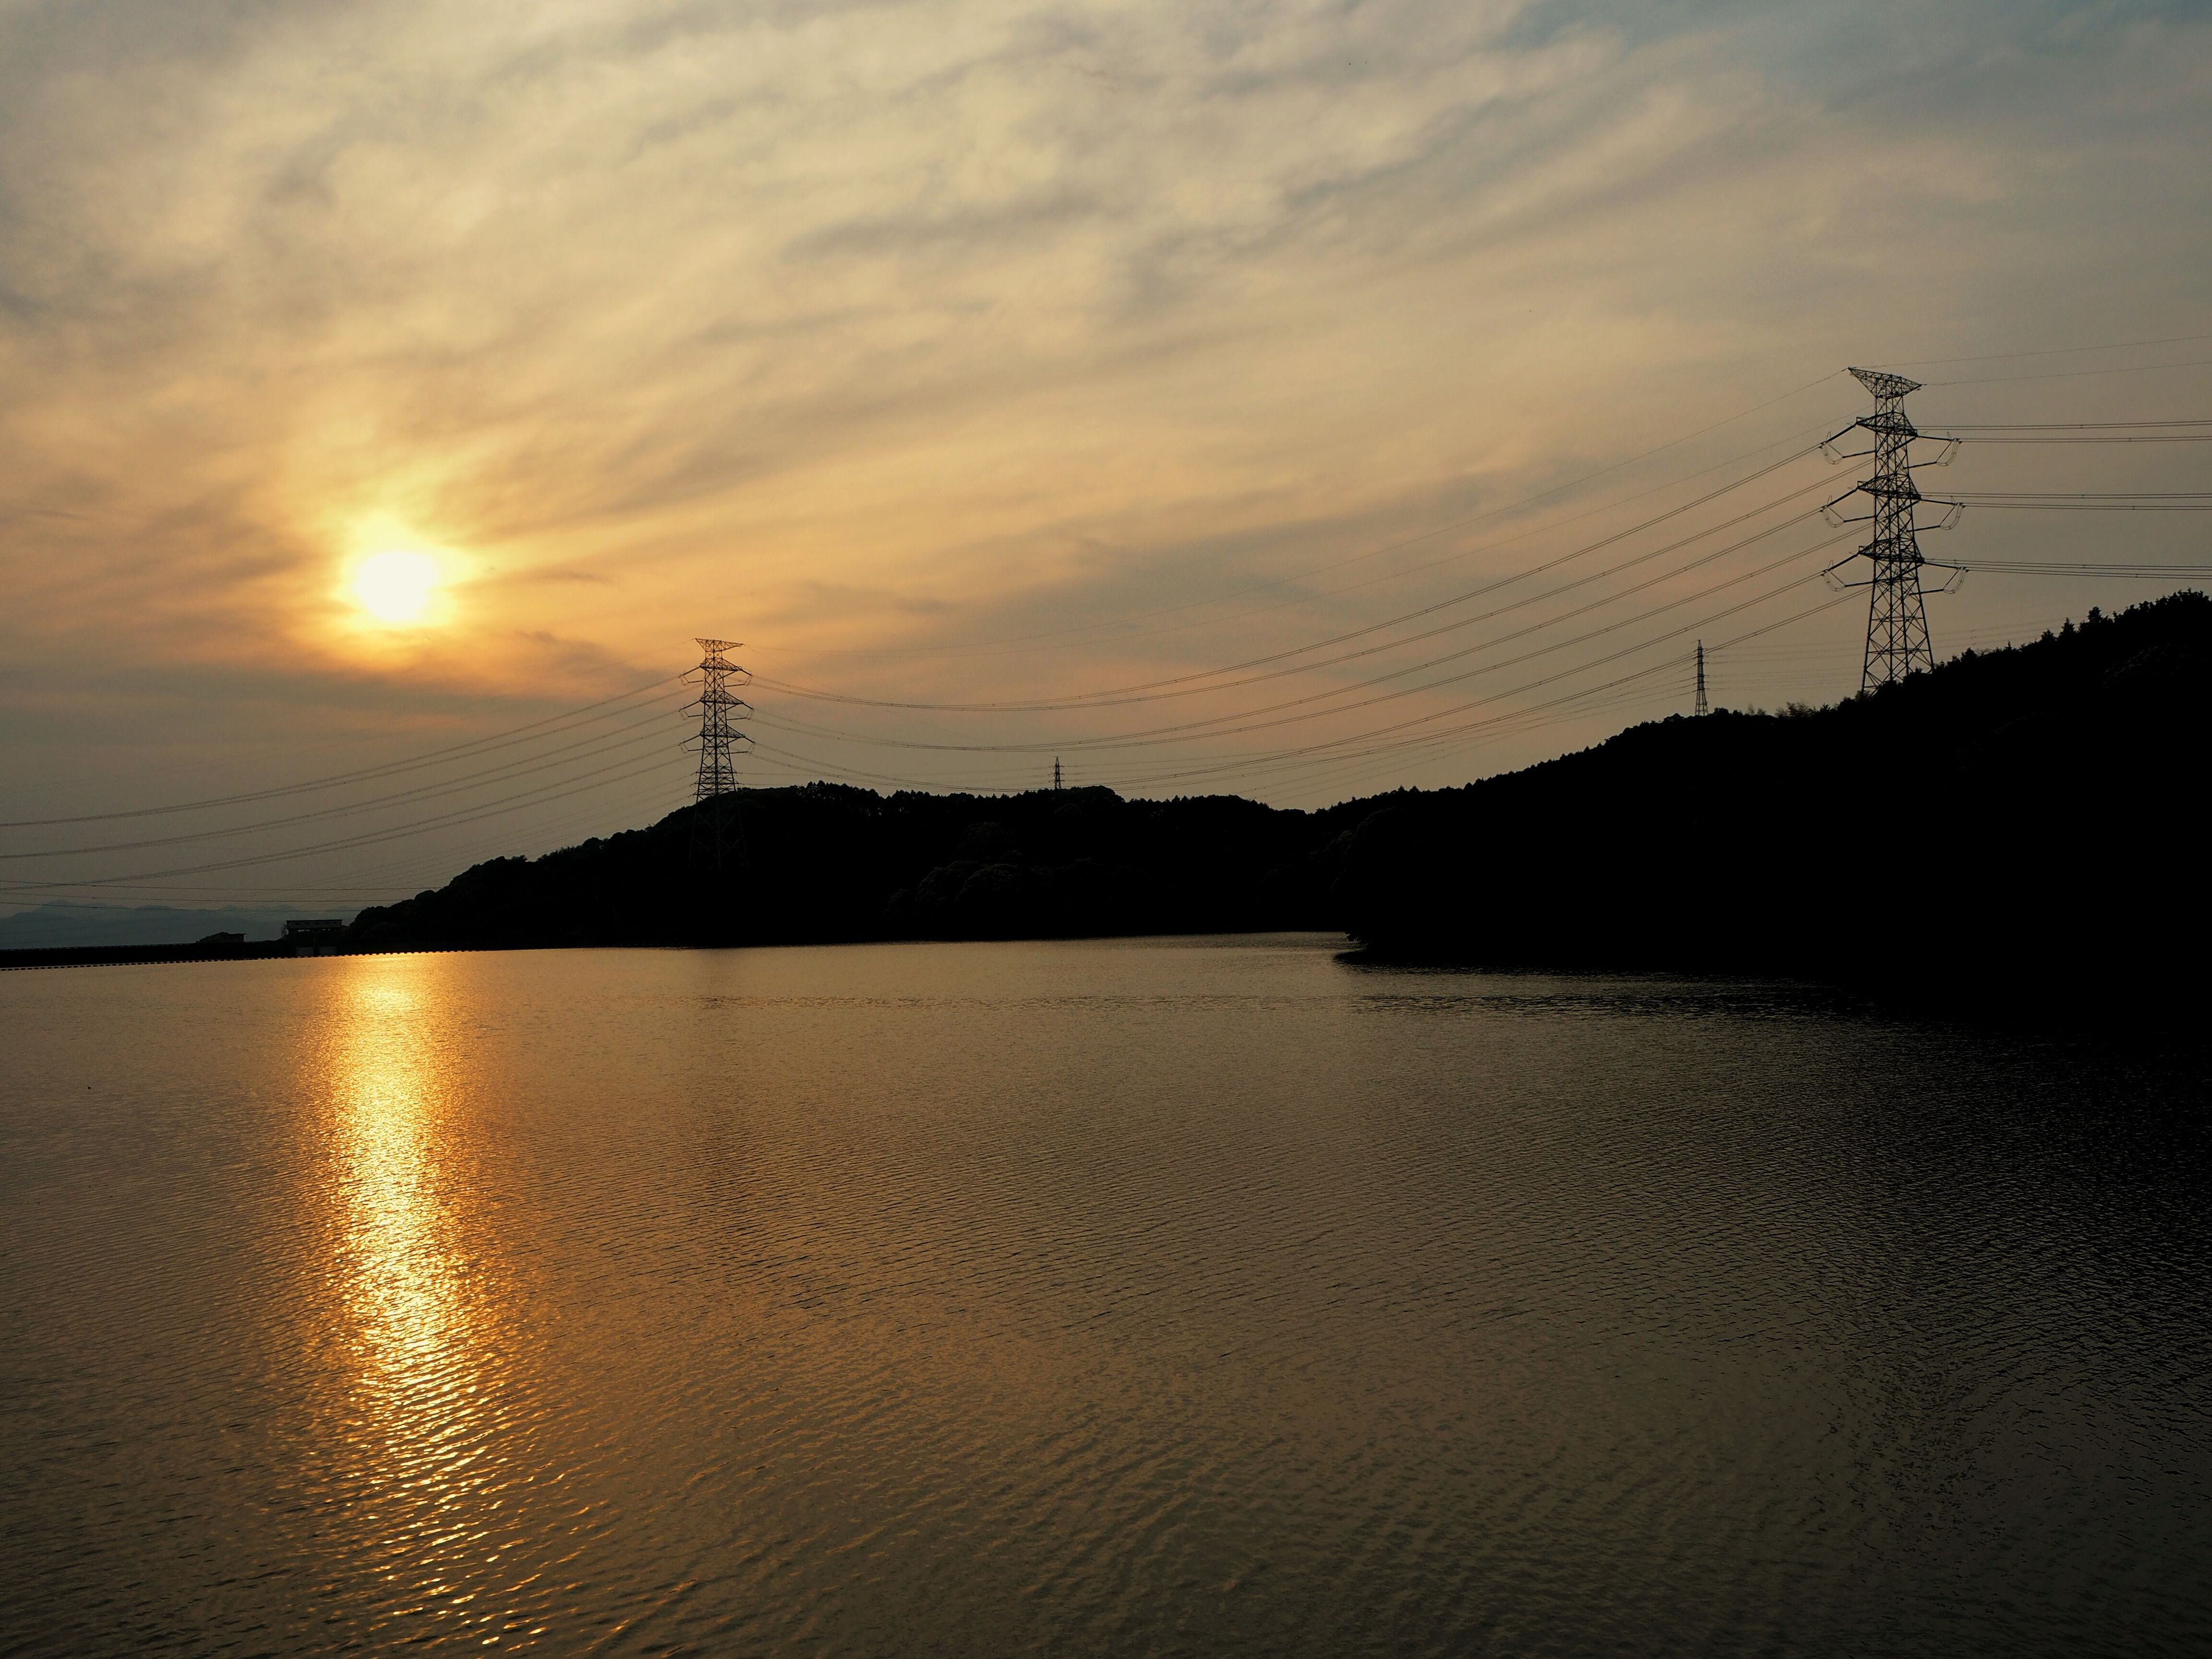 sunset, water, silhouette, sun, reflection, sky, tranquil scene, scenics, tranquility, beauty in nature, orange color, electricity pylon, idyllic, nature, power line, cloud - sky, waterfront, sunlight, lake, cloud